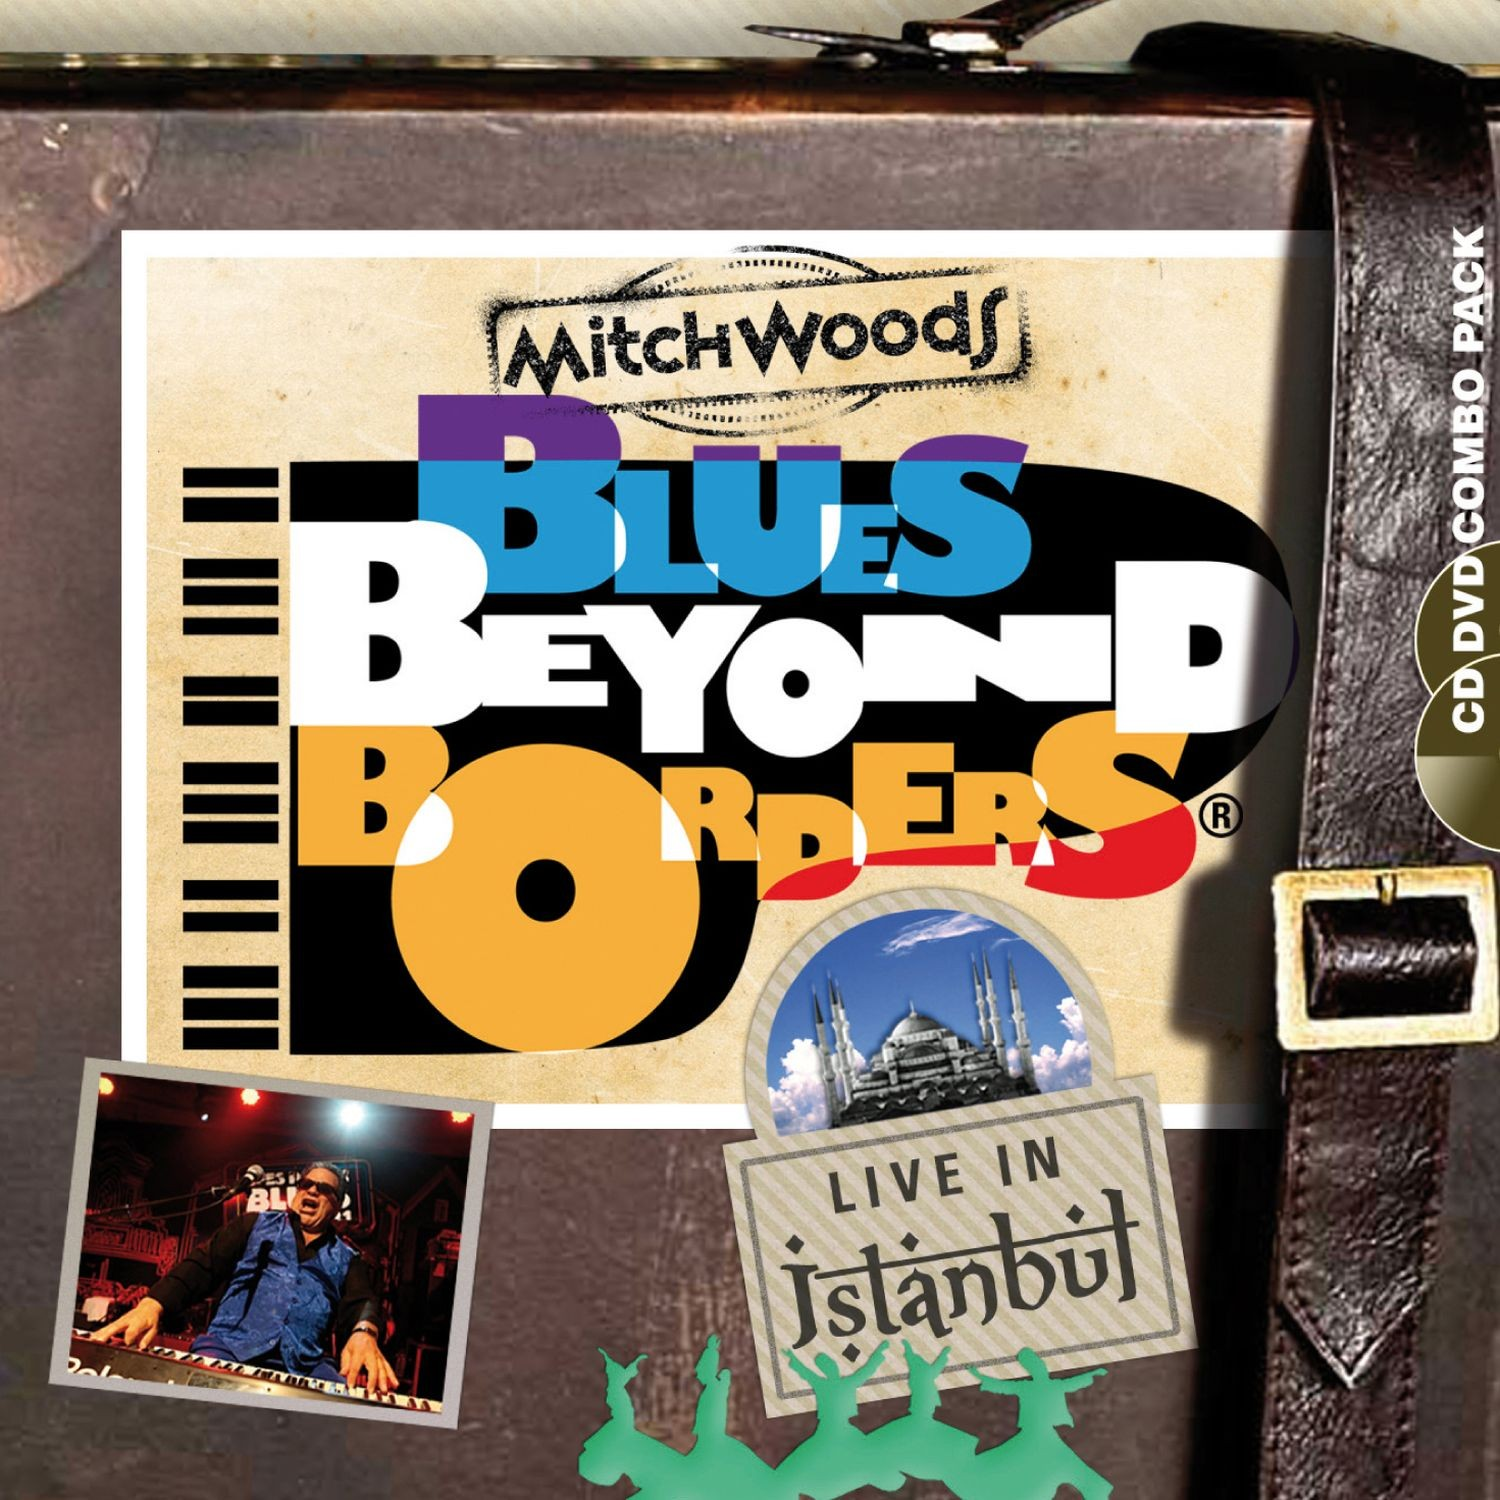 Mitch Woods: Blues Beyond Borders - Live in Istanbul